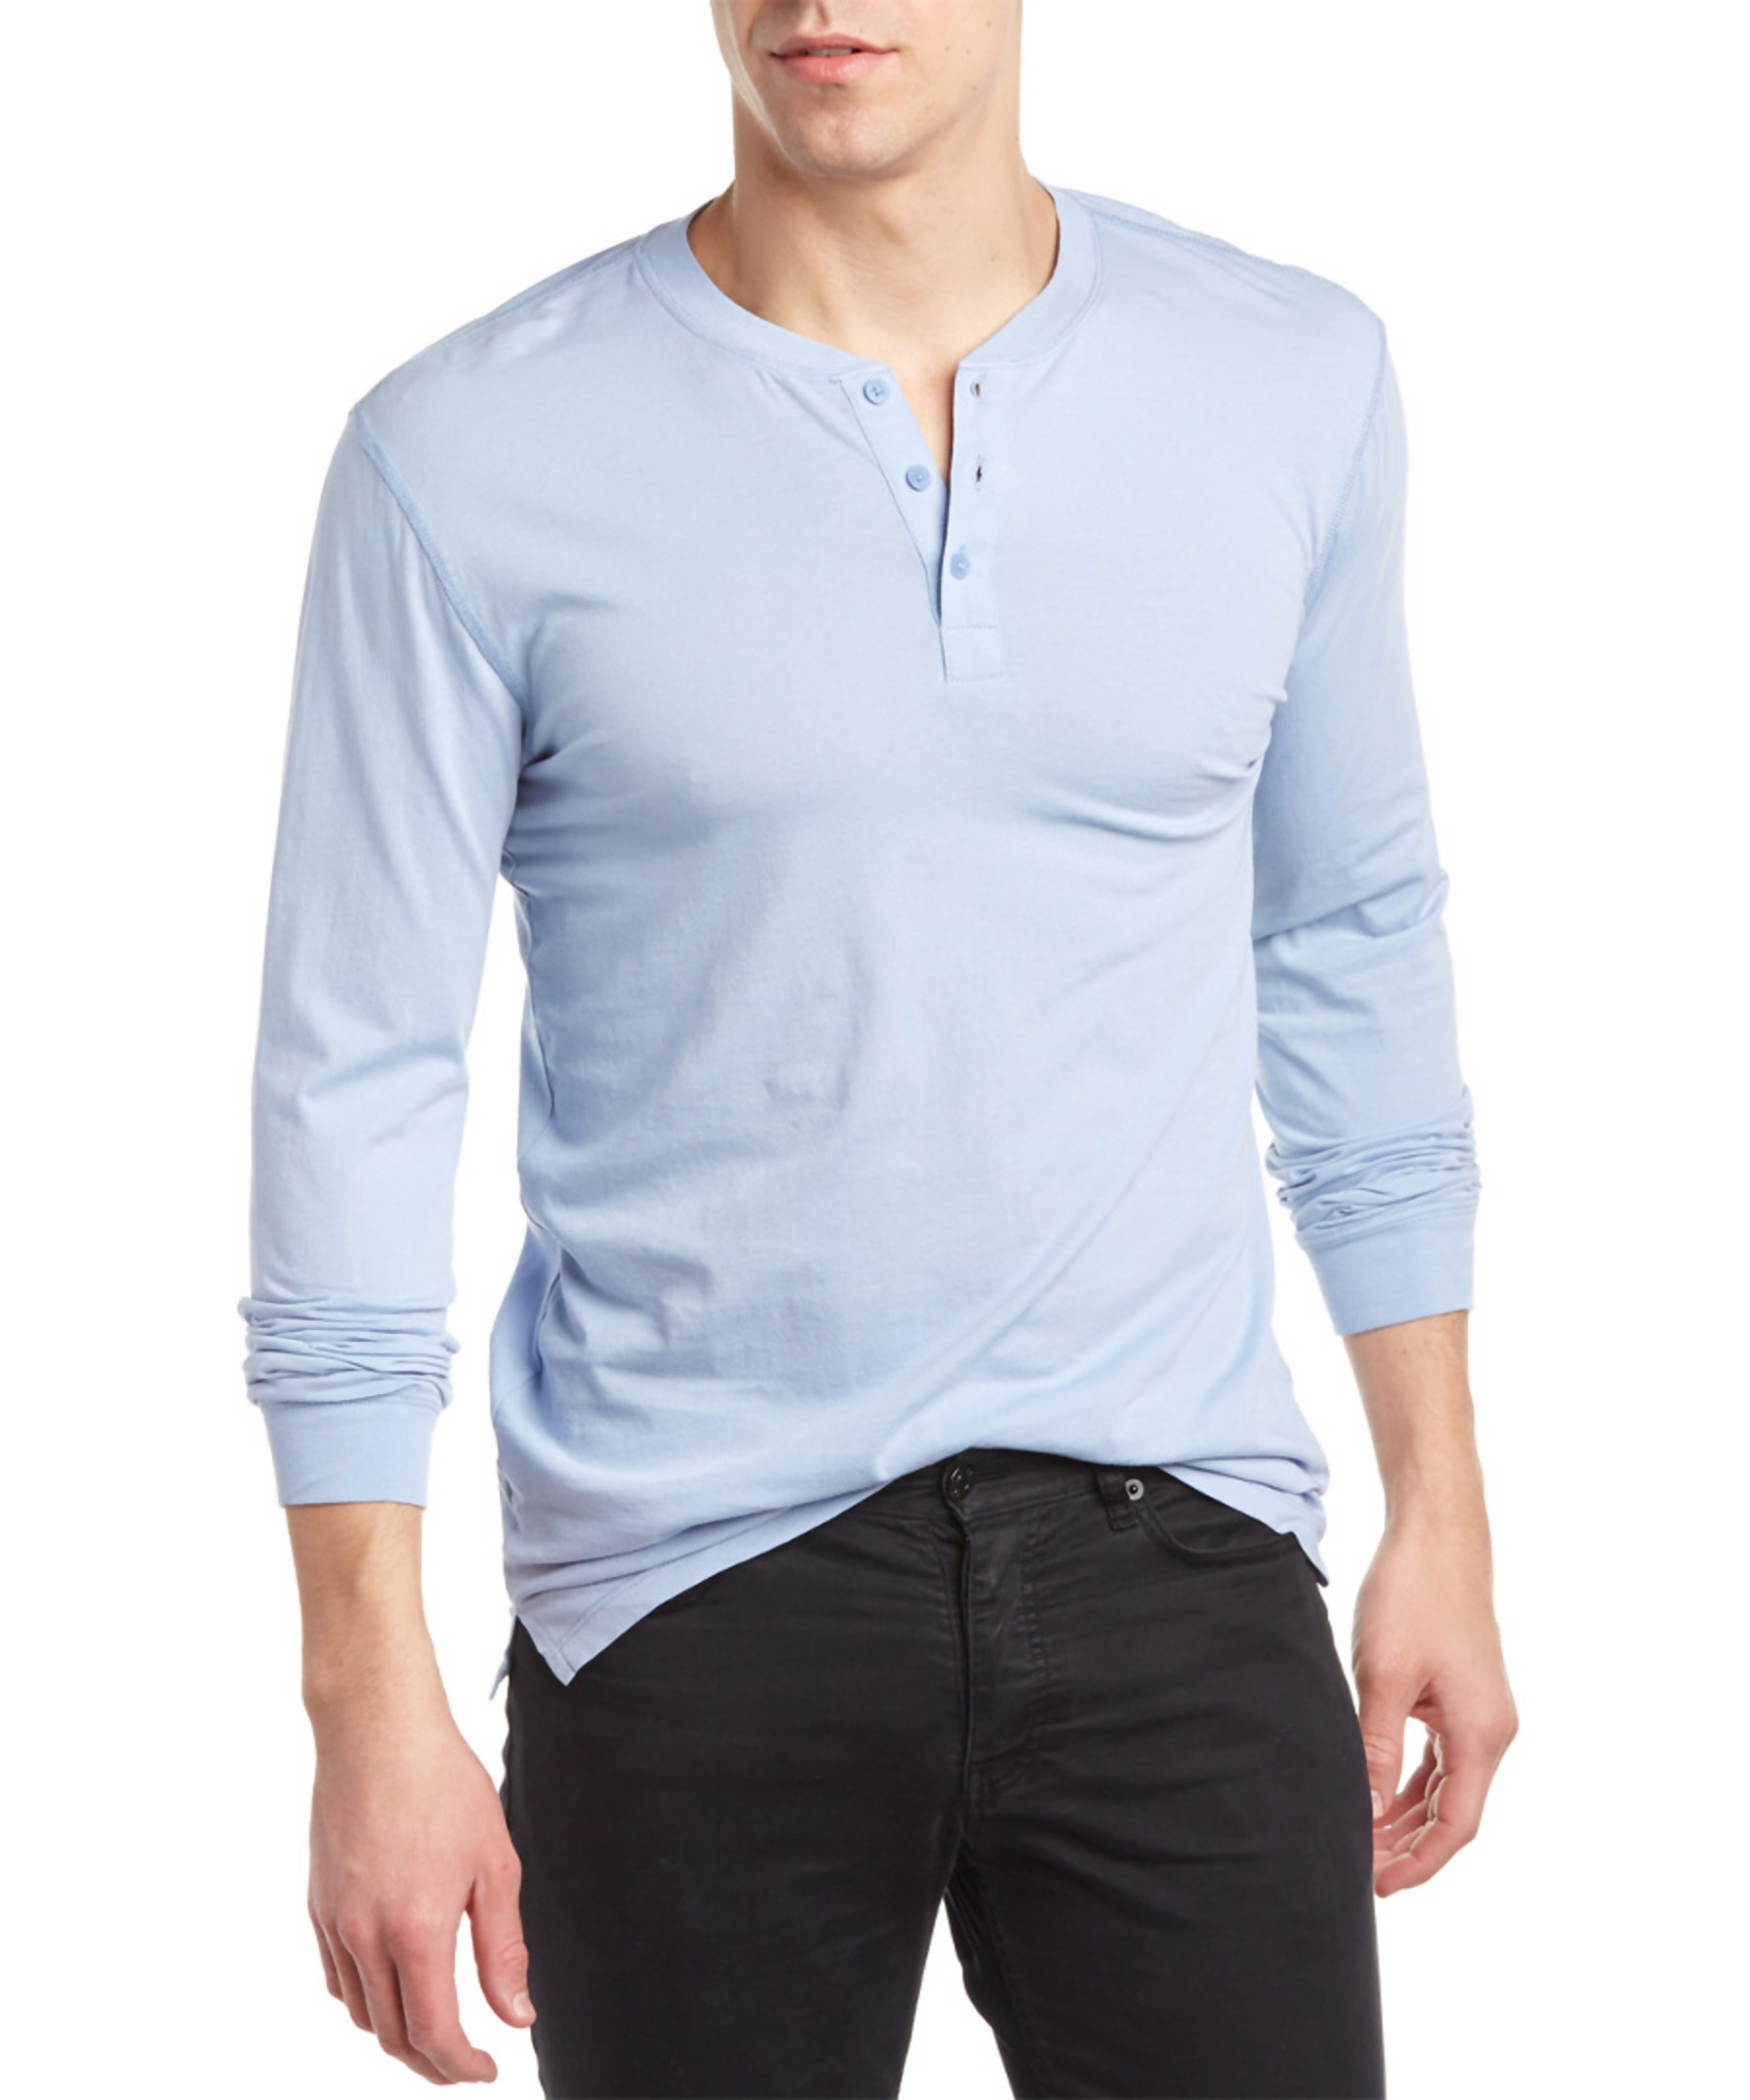 Slate And Stone Clothing : Slate stone henley in blue for men lyst